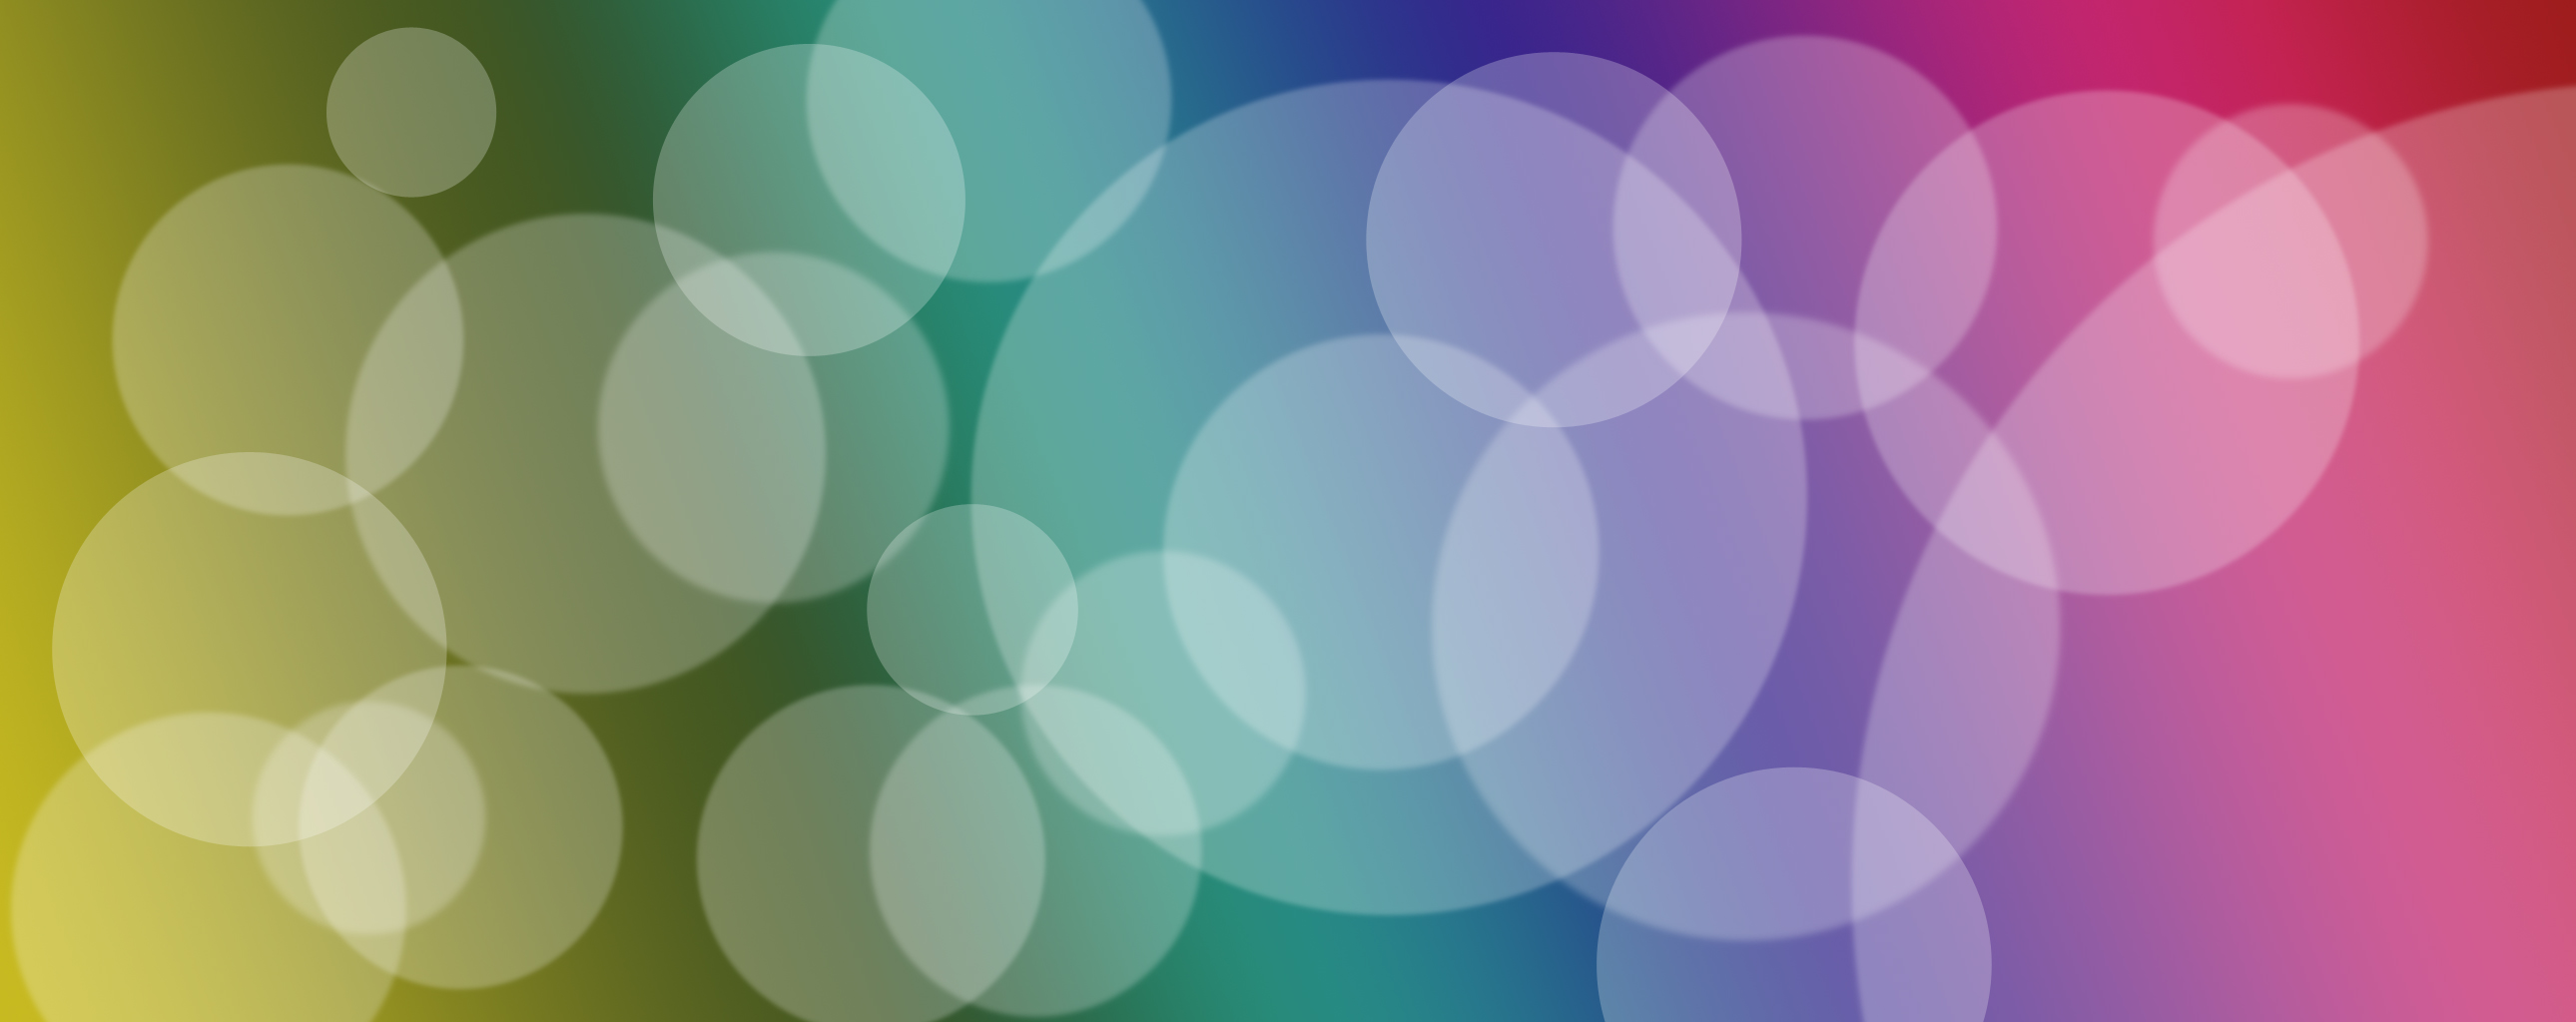 Colorful Background Stock Images RoyaltyFree Images